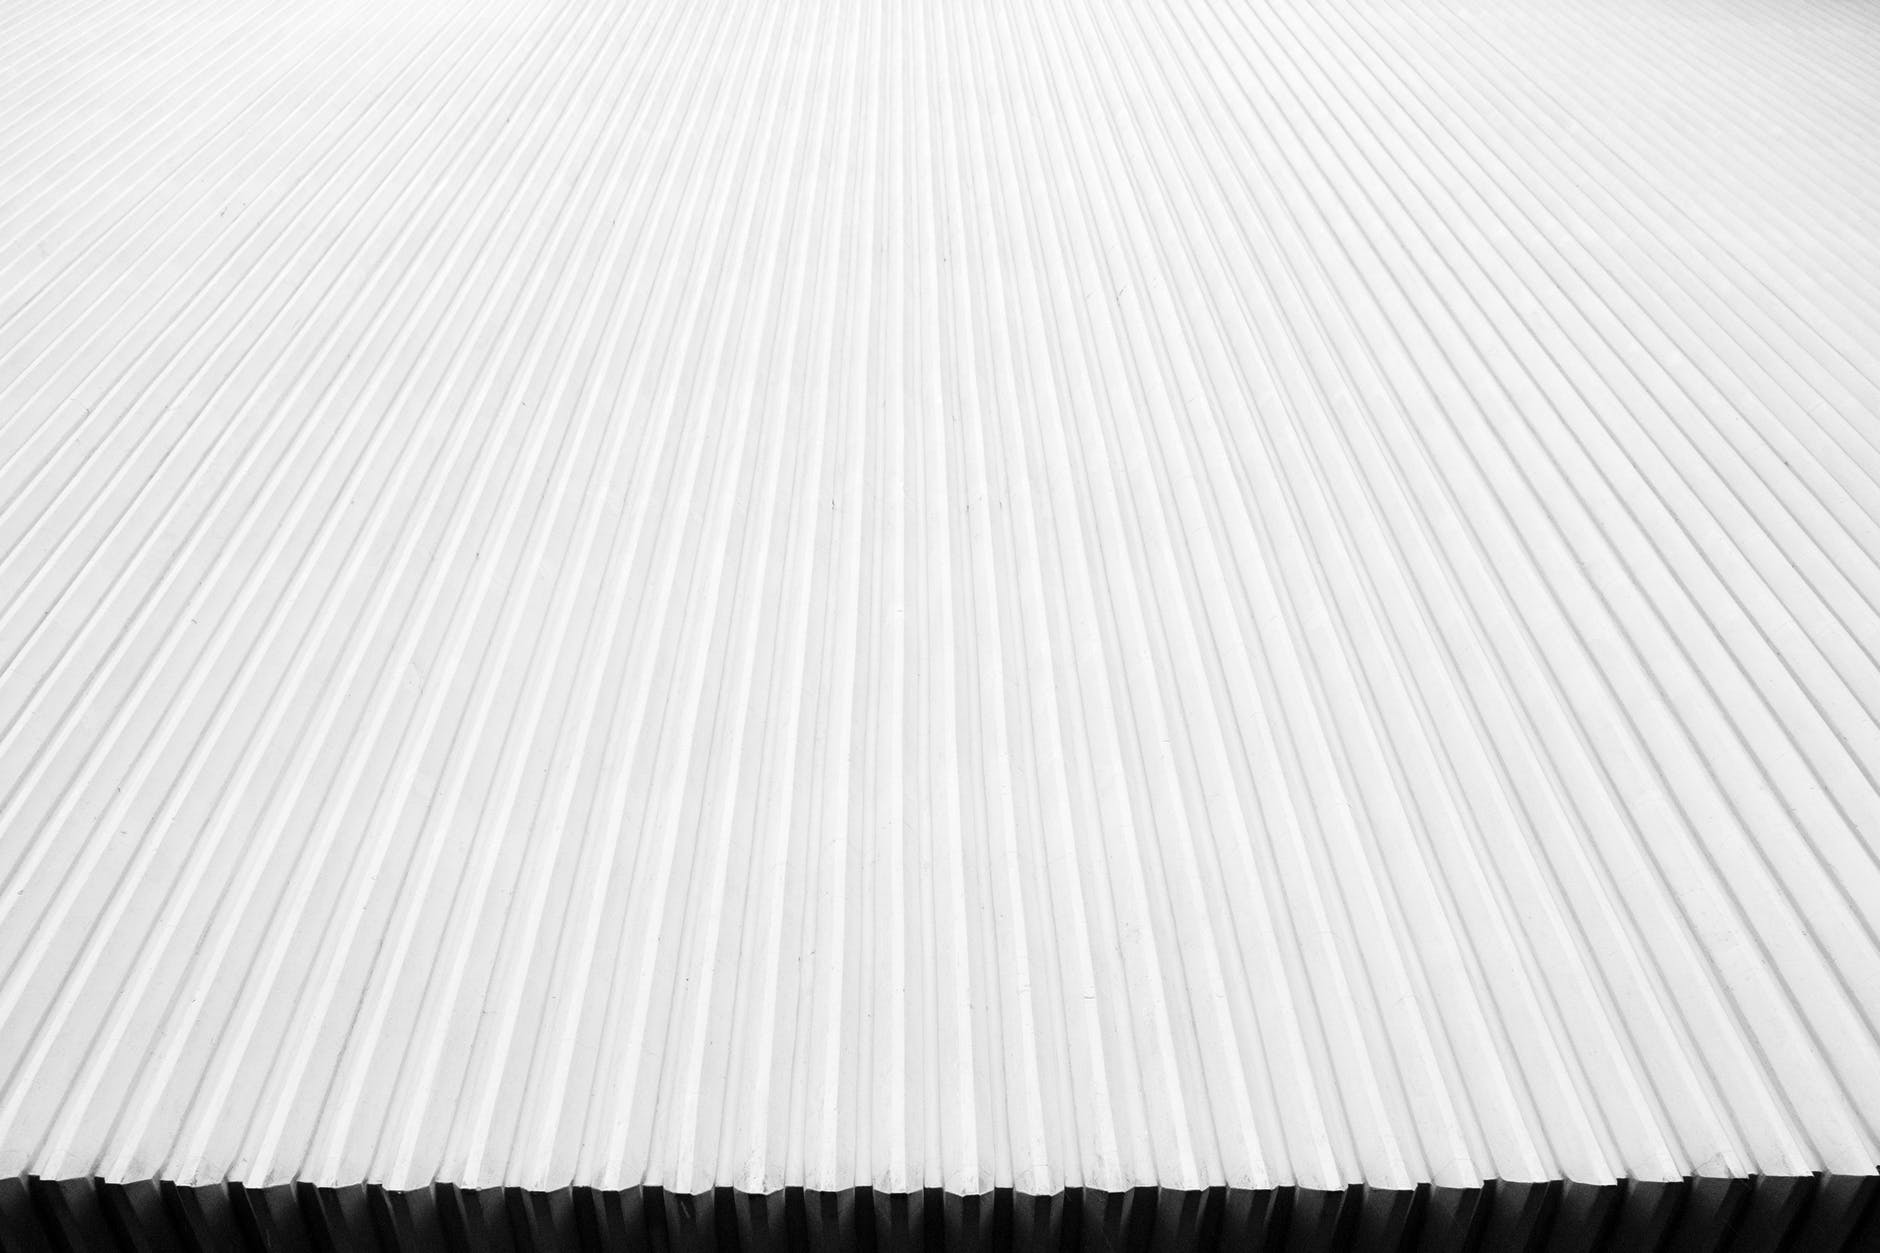 paul charles roofing sheet roof